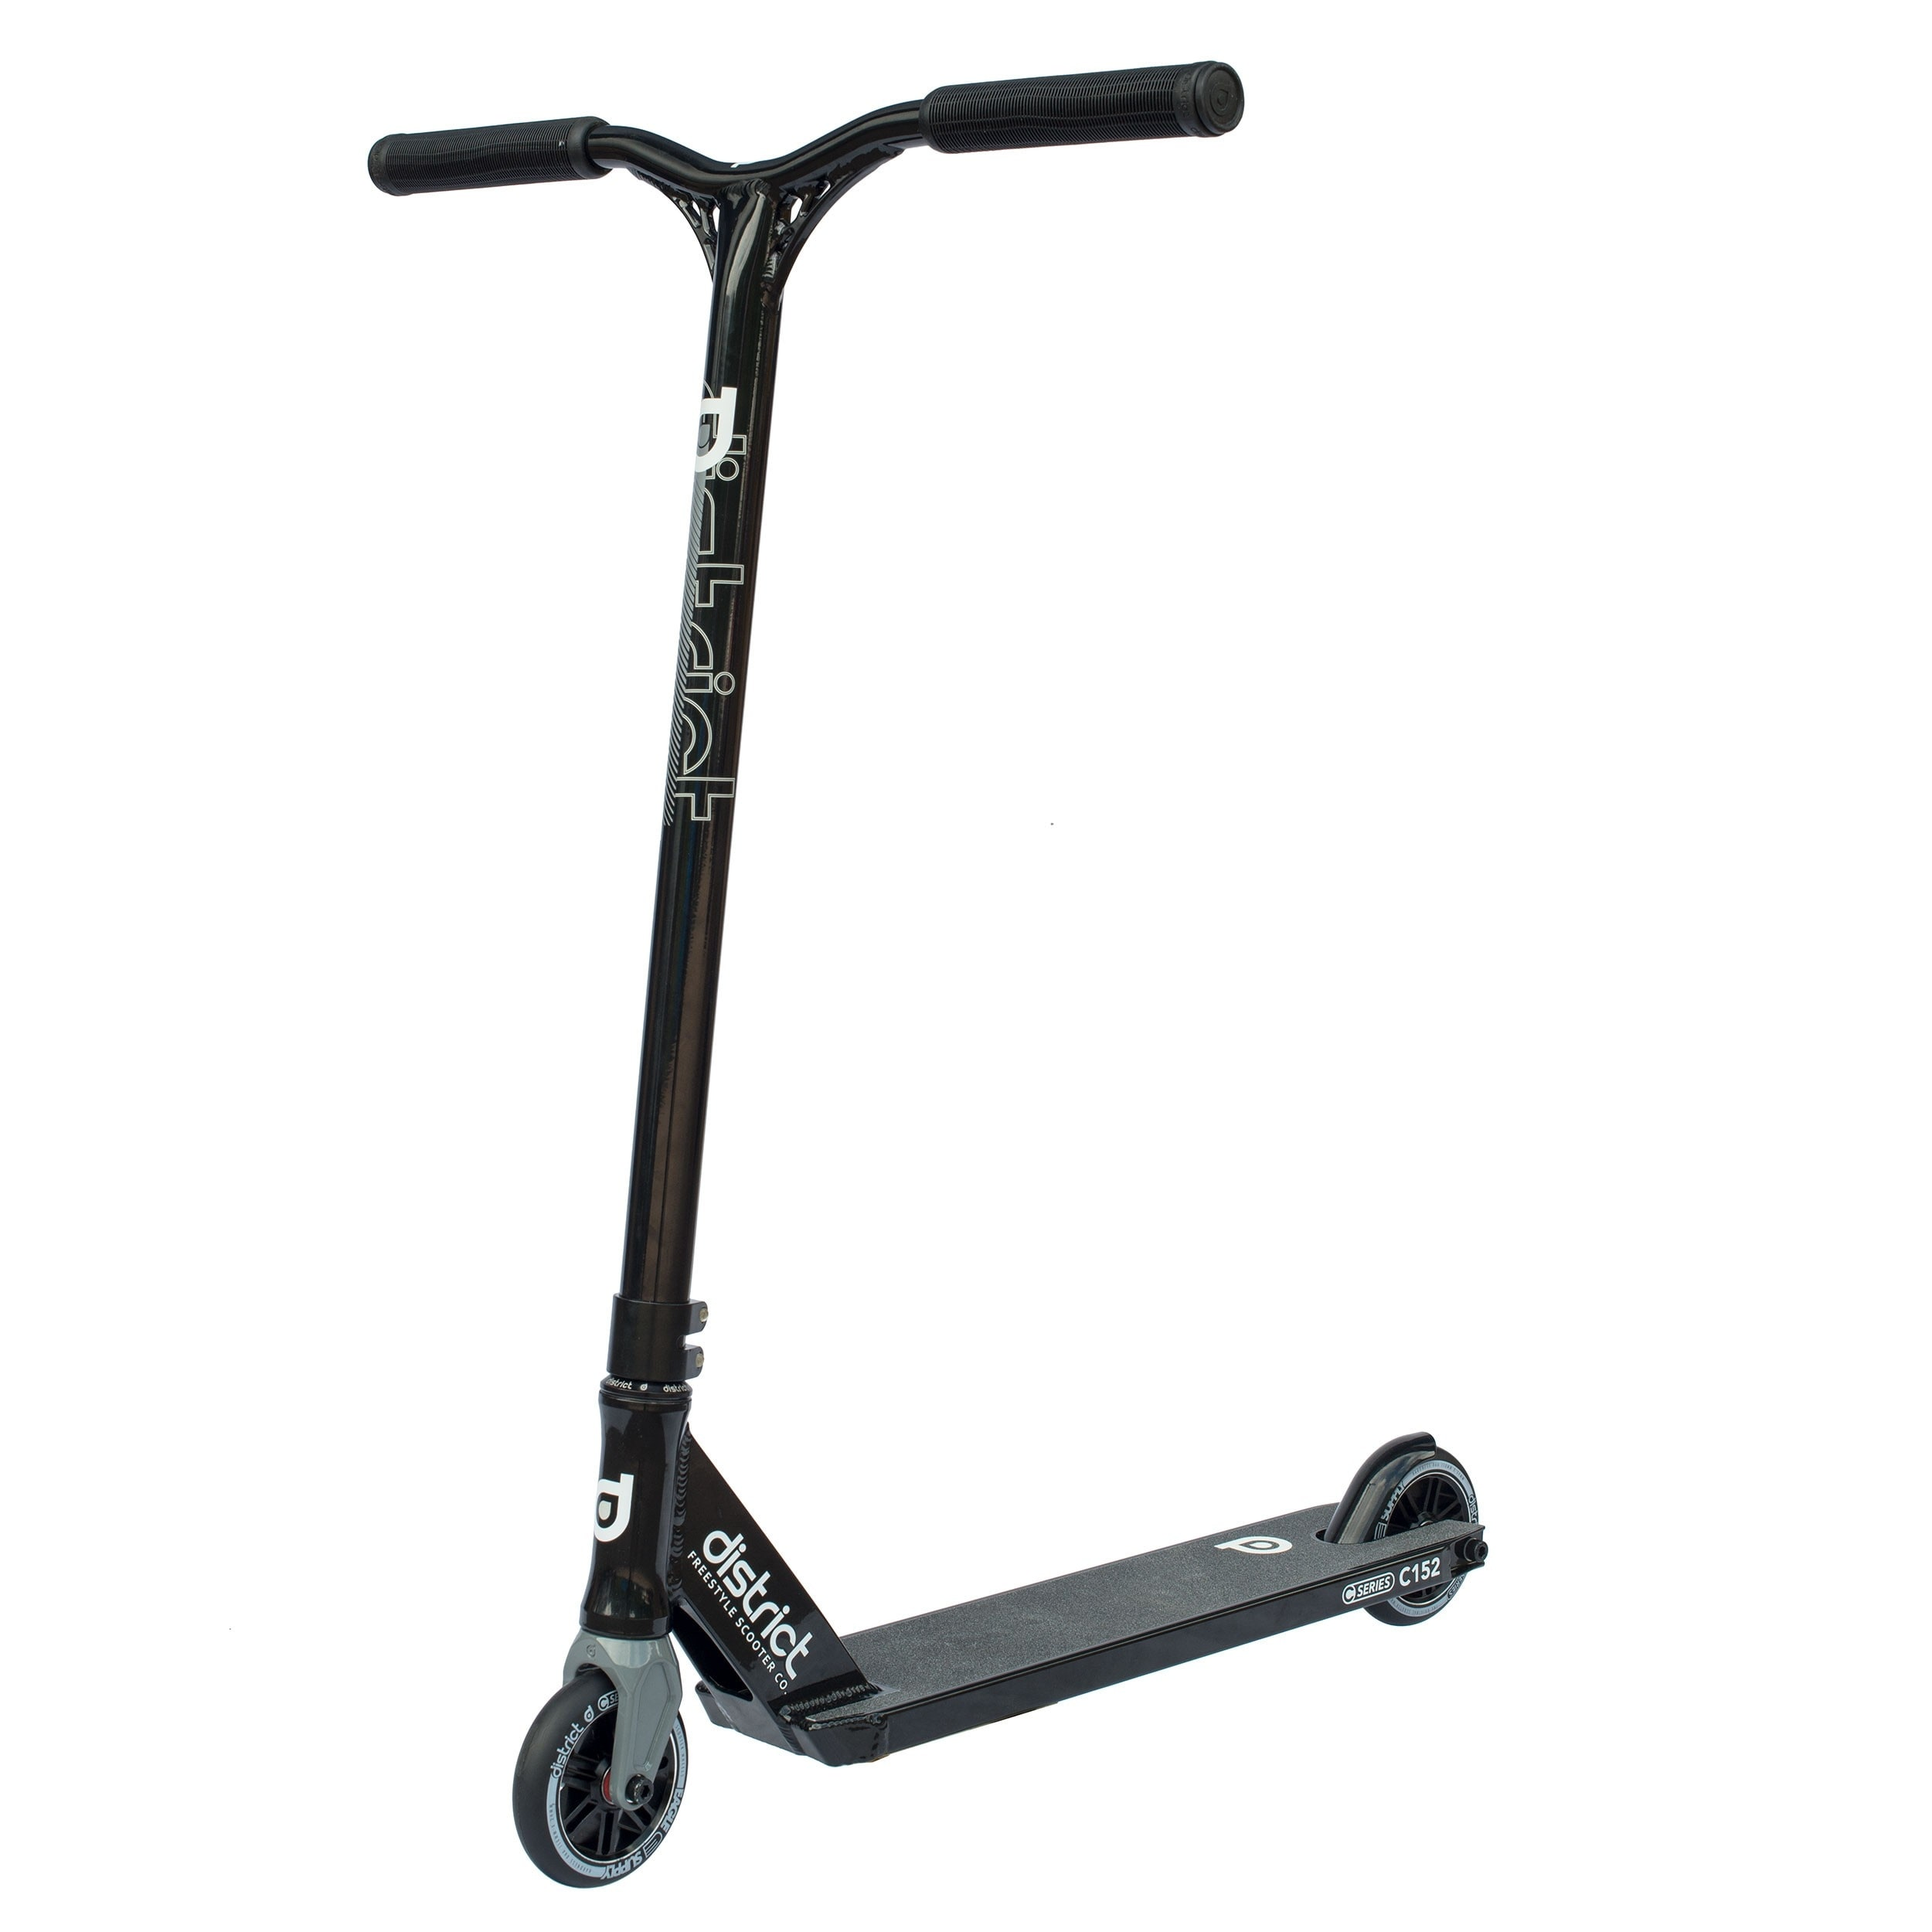 Image of District 2017 C-Series C152 Complete Scooter - Black/Black